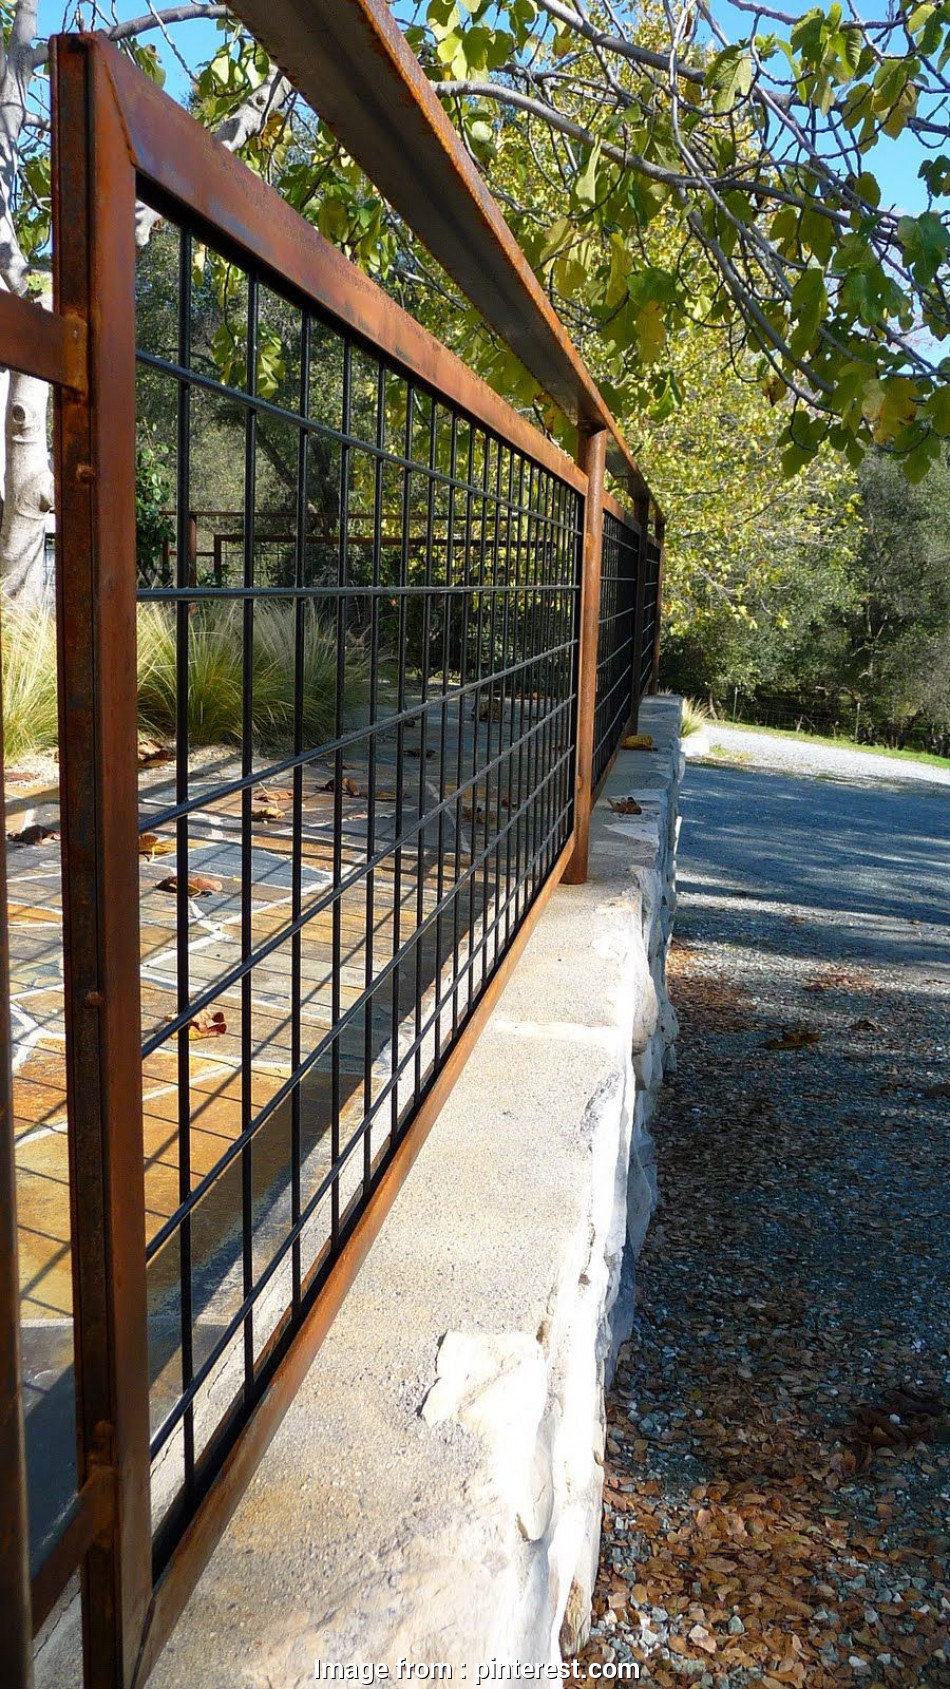 used wire mesh panels Living Iron:, Wire Fencing with Patina, landscape design, fencing. Will it keep, deer? Used Wire Mesh Panels Popular Living Iron:, Wire Fencing With Patina, Landscape Design, Fencing. Will It Keep, Deer? Images